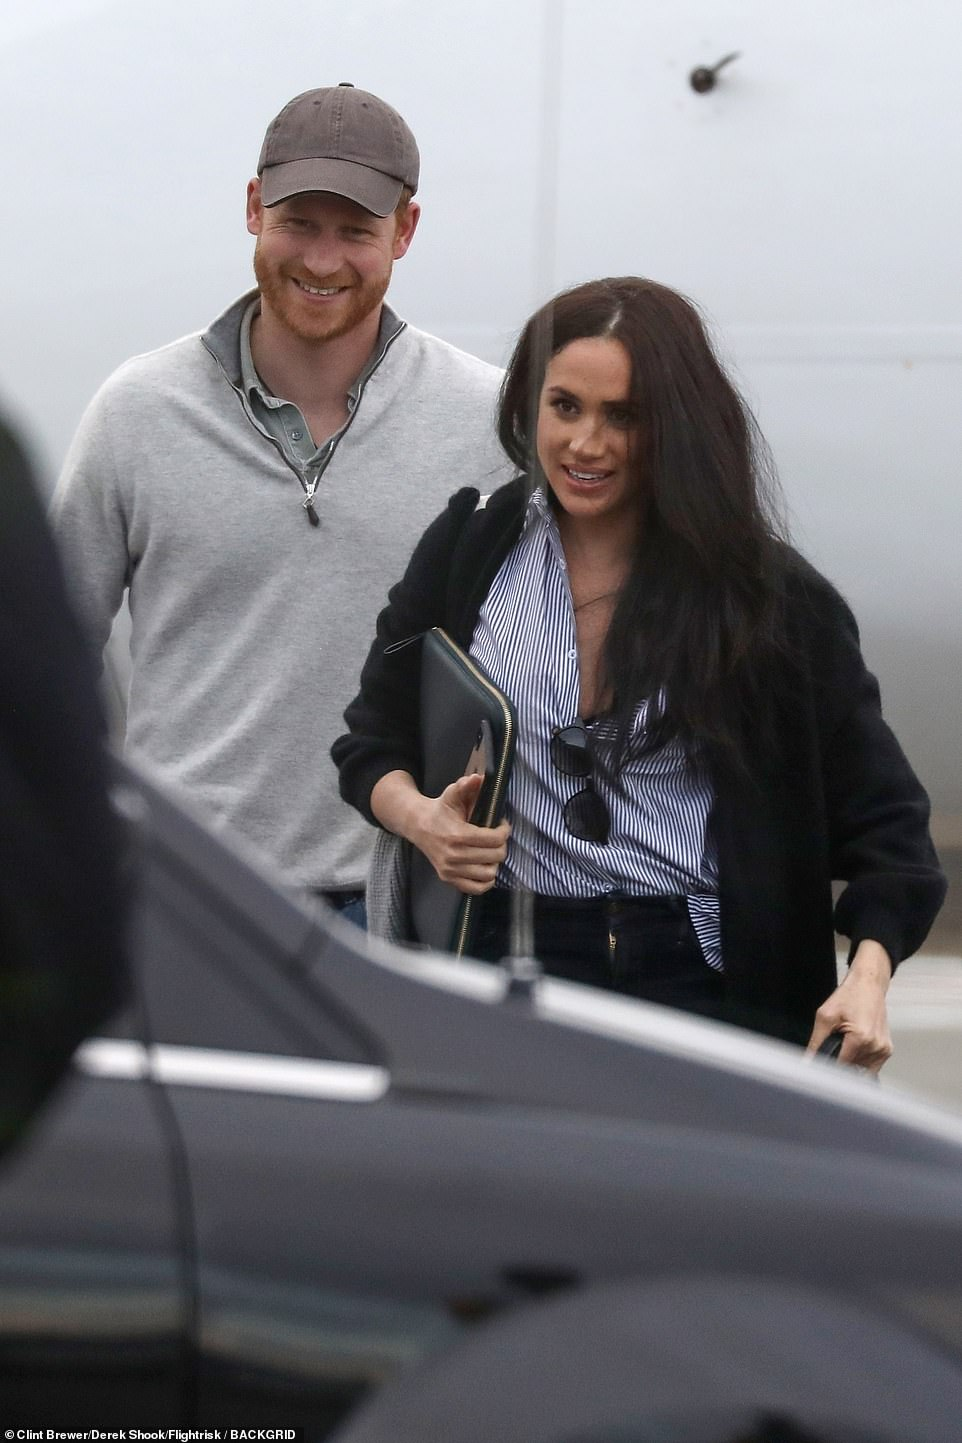 Prince Harry and Meghan Markle were seen together for the first time since Megxit as they stepped off a plane in Canada on Valentine's Day